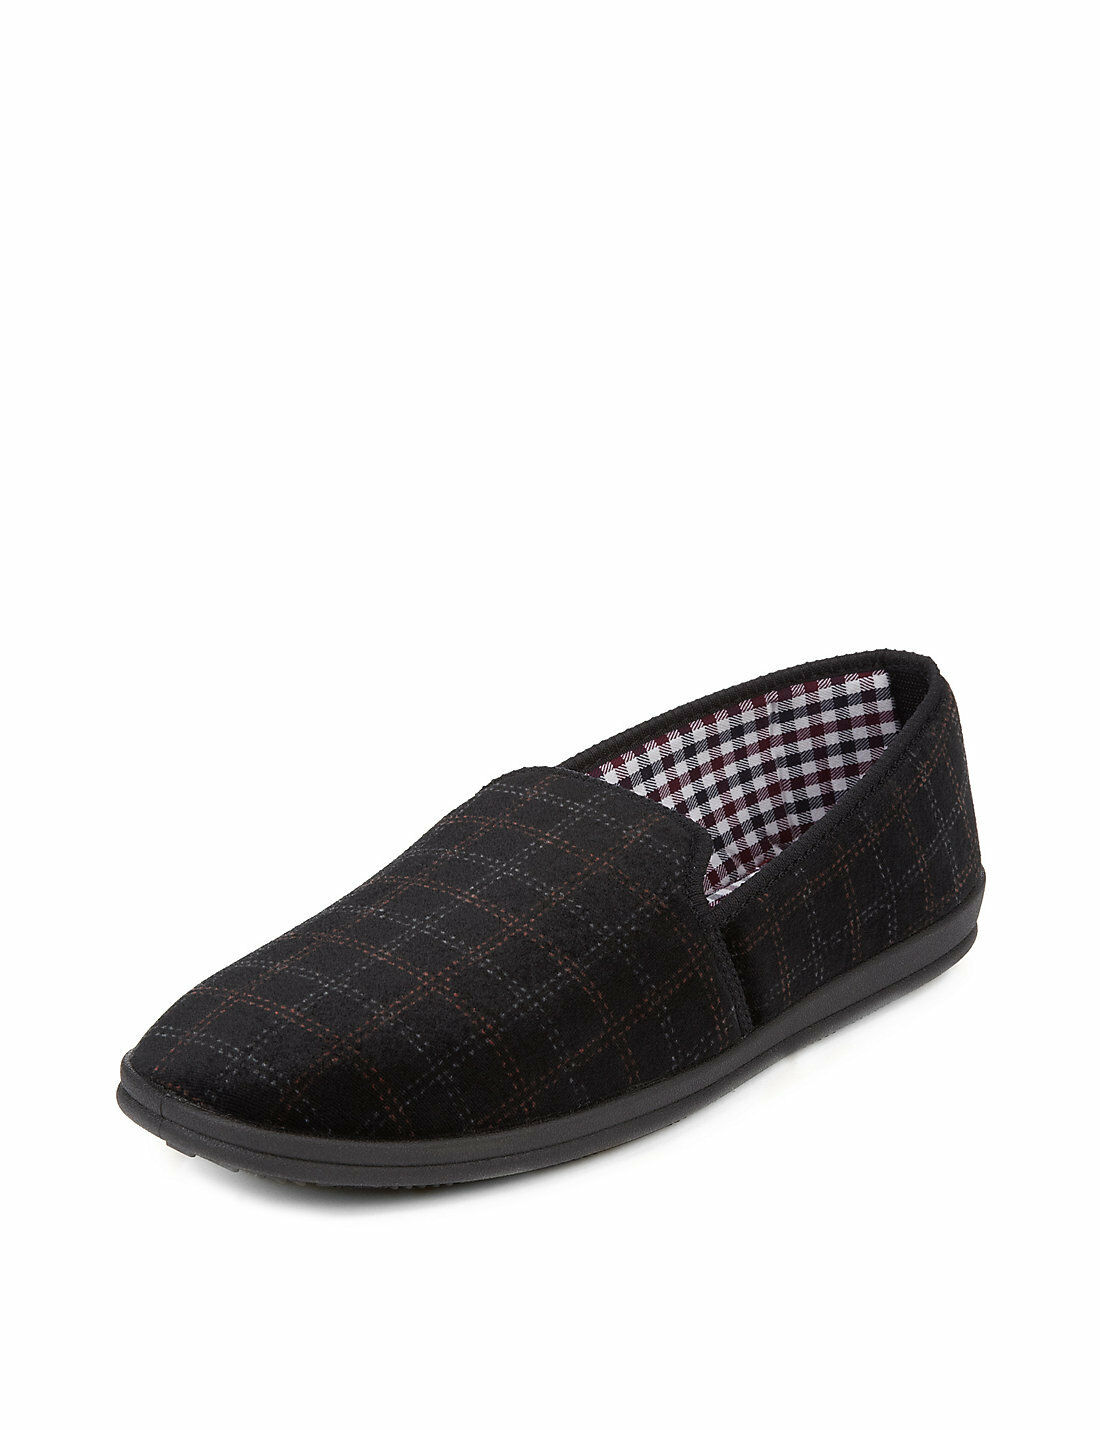 Marks and Spencer Spencer and Slip-On Check Slippers Talla 12 Negro 85dca9